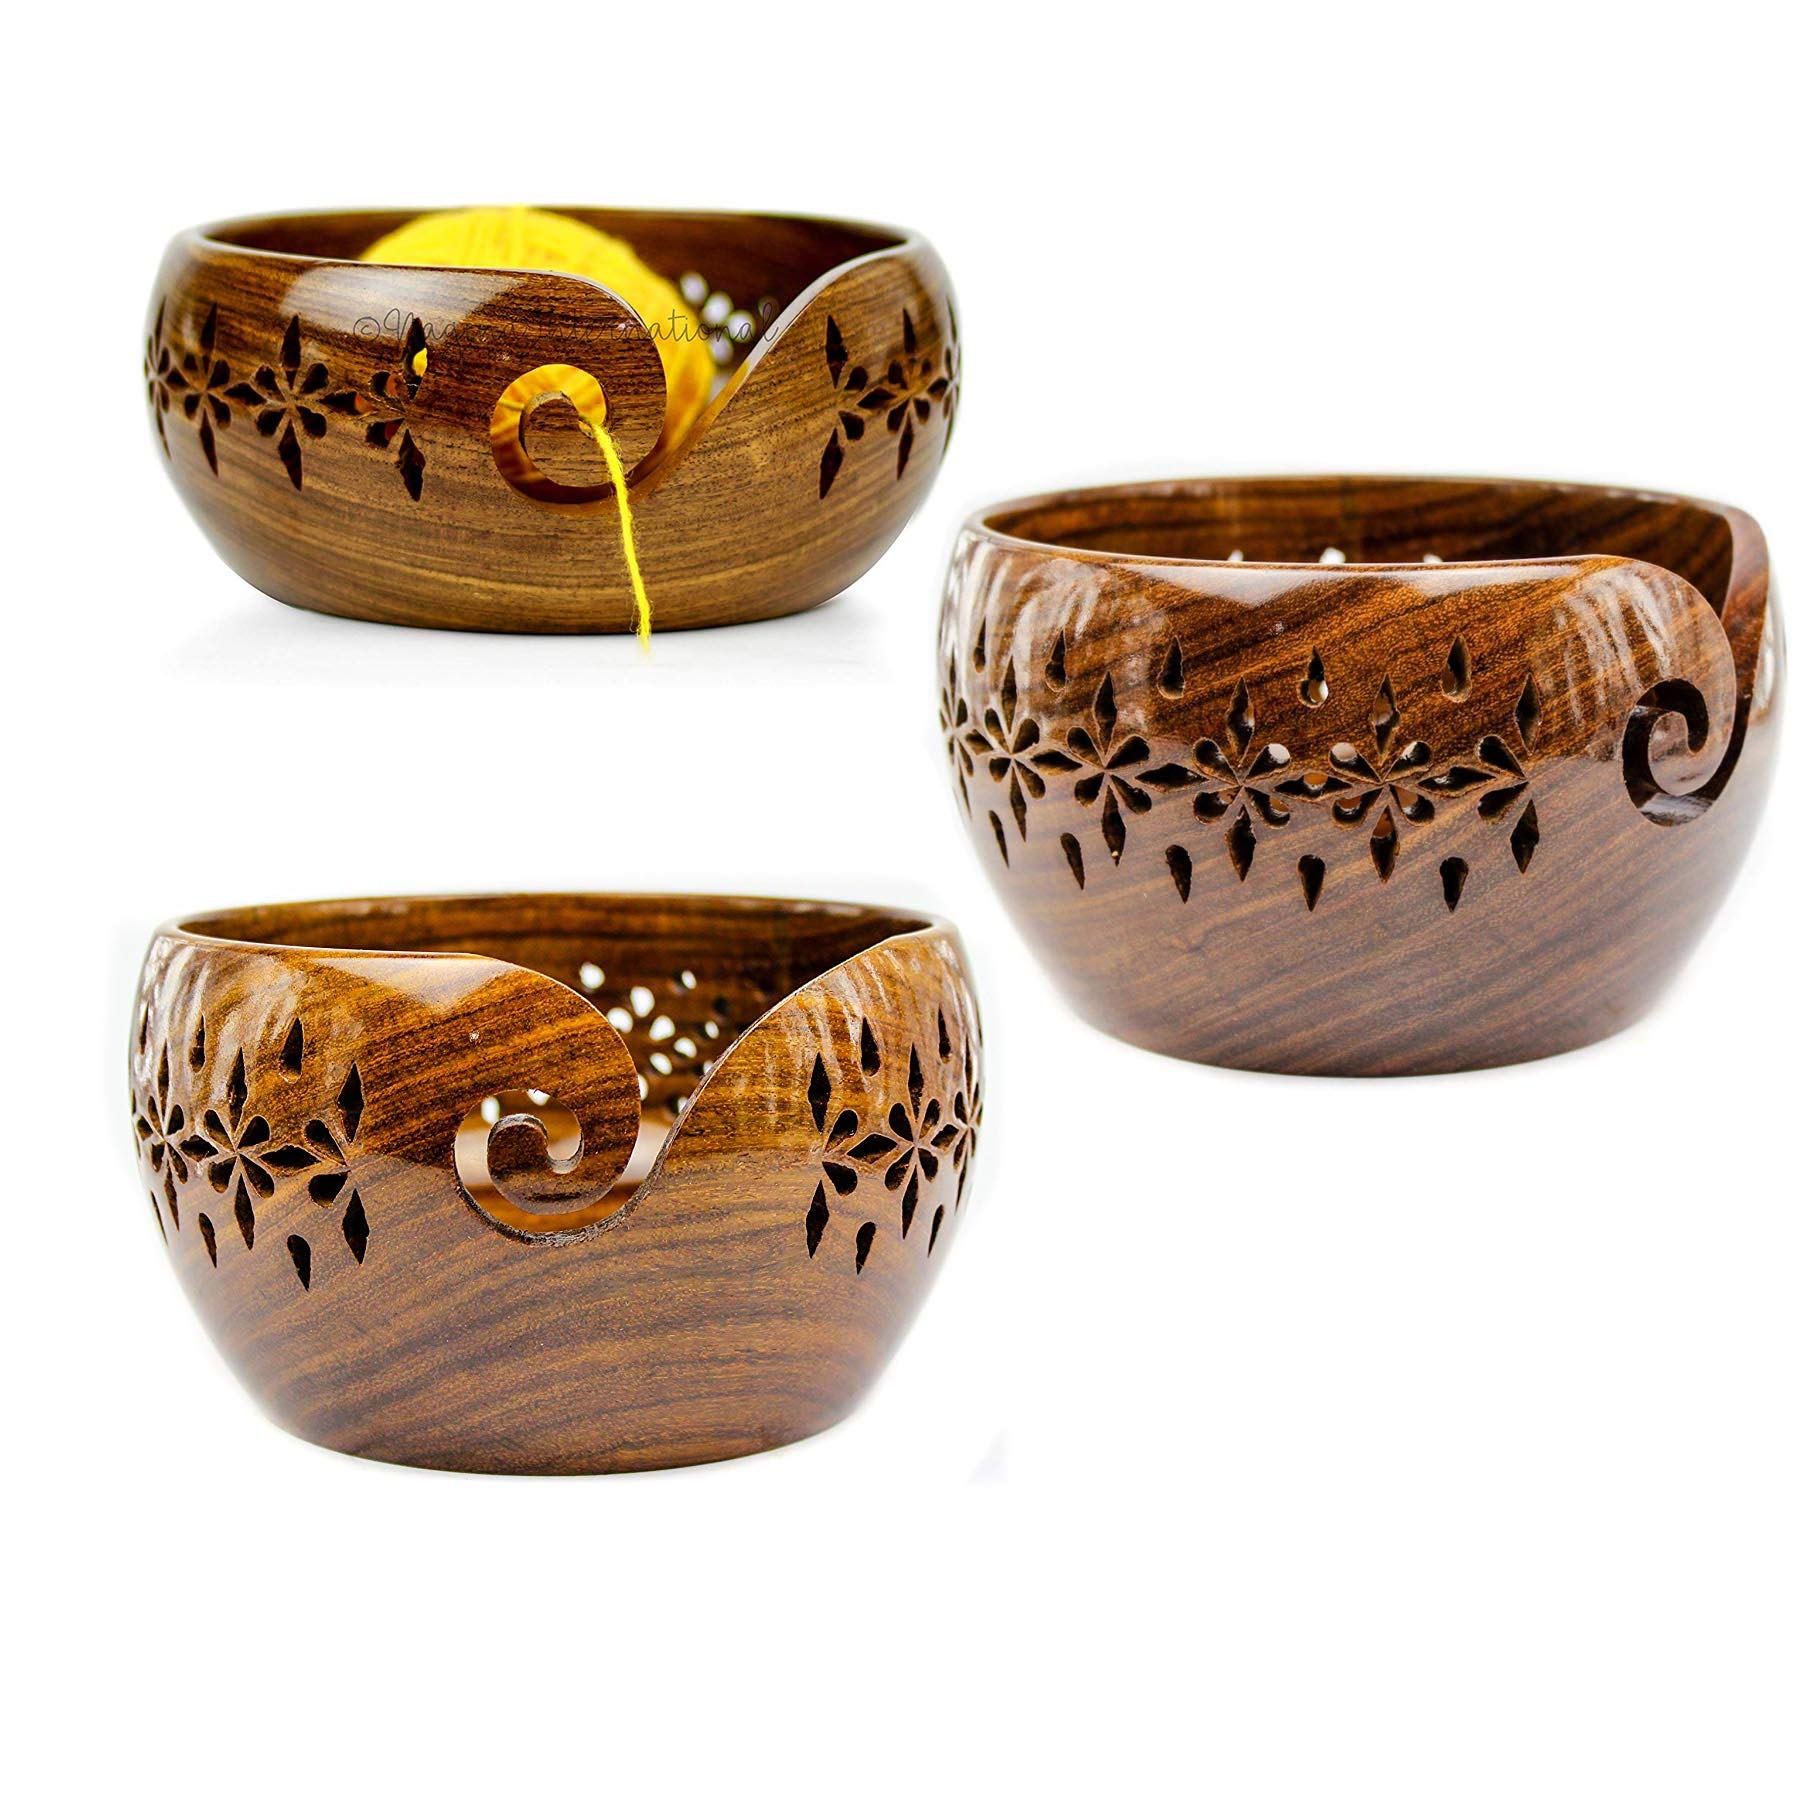 Rosewood Crafted Wooden Yarn Storage Bowl with Carved Holes & Drills | Knitting Crochet Accessories | Nagina International (Set)